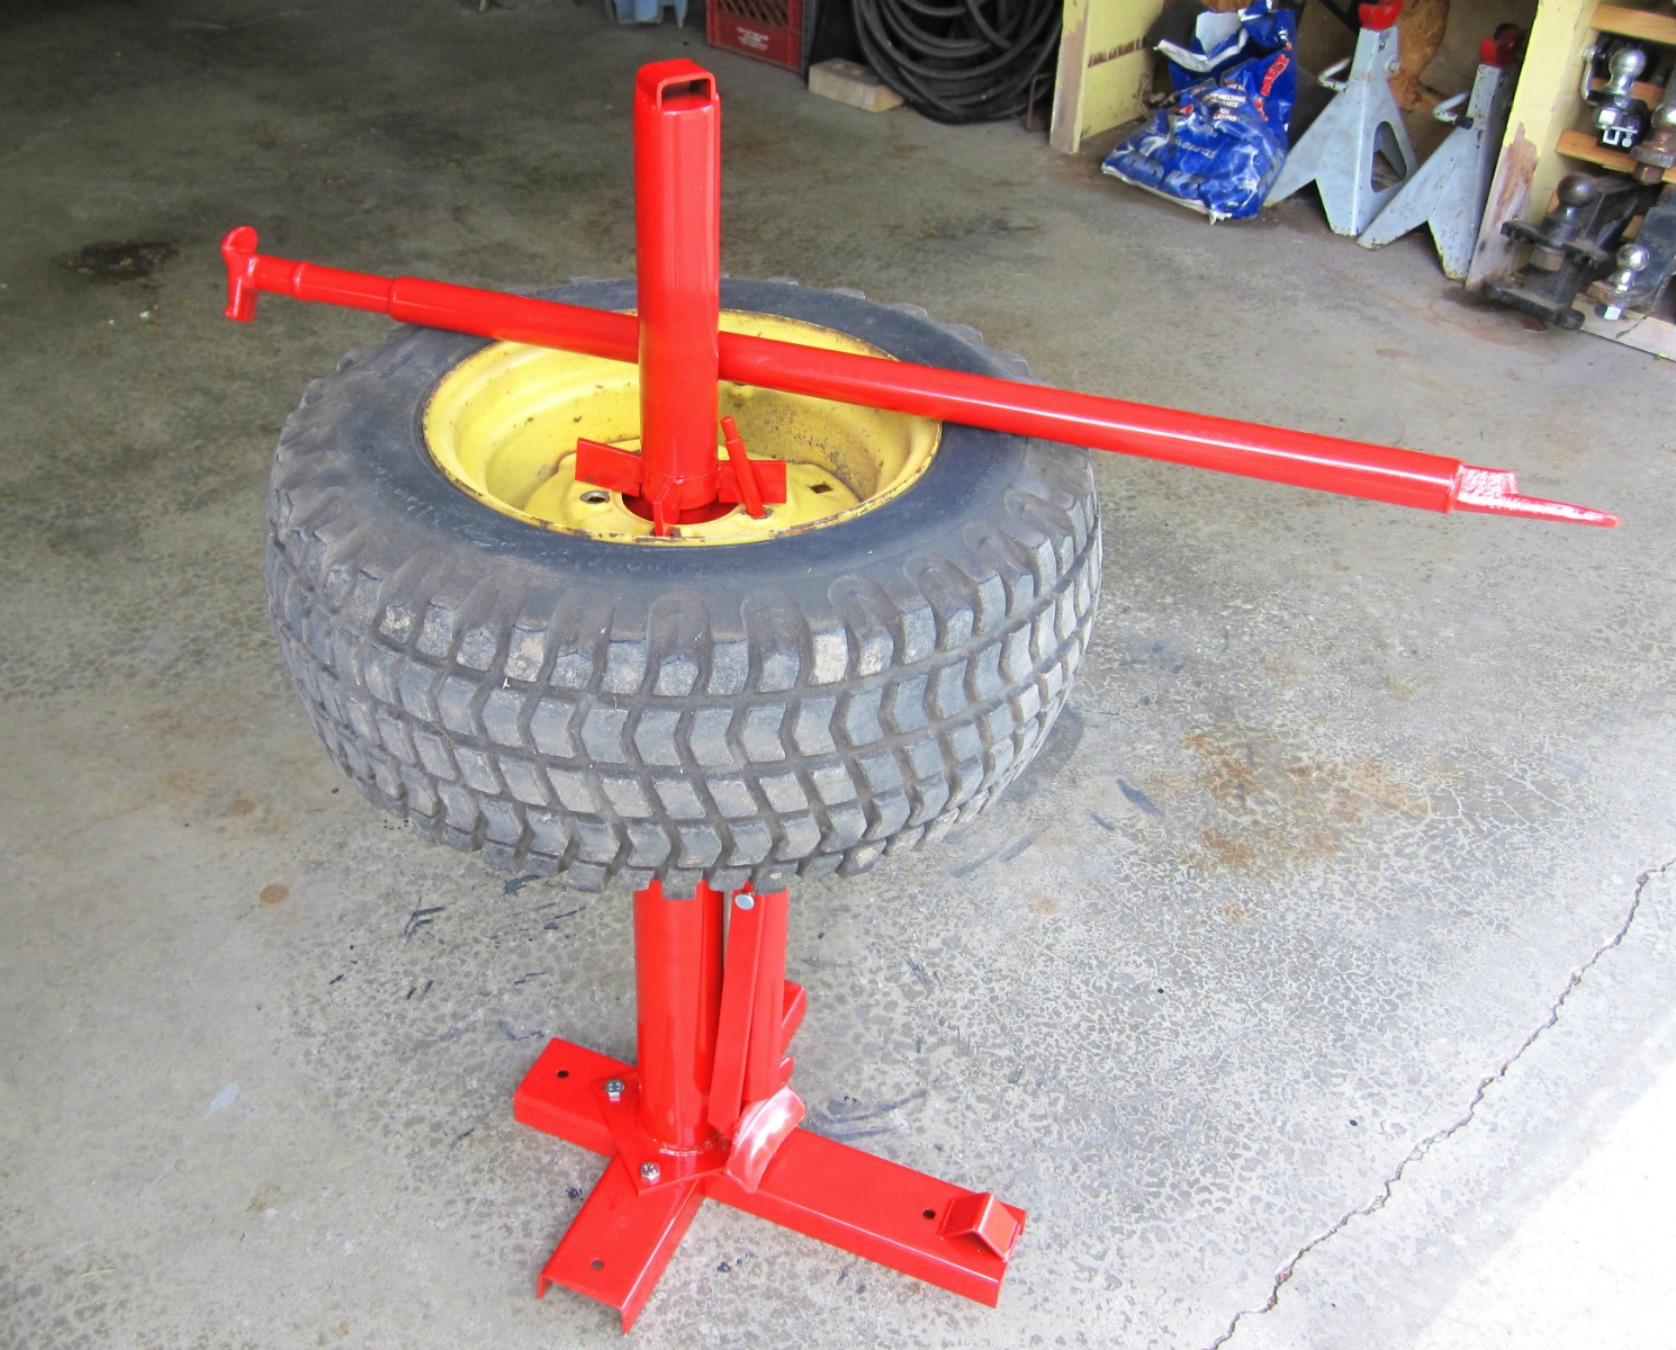 ... Click image for larger version Name: Tire changer II 5 17 13 resized.jpg